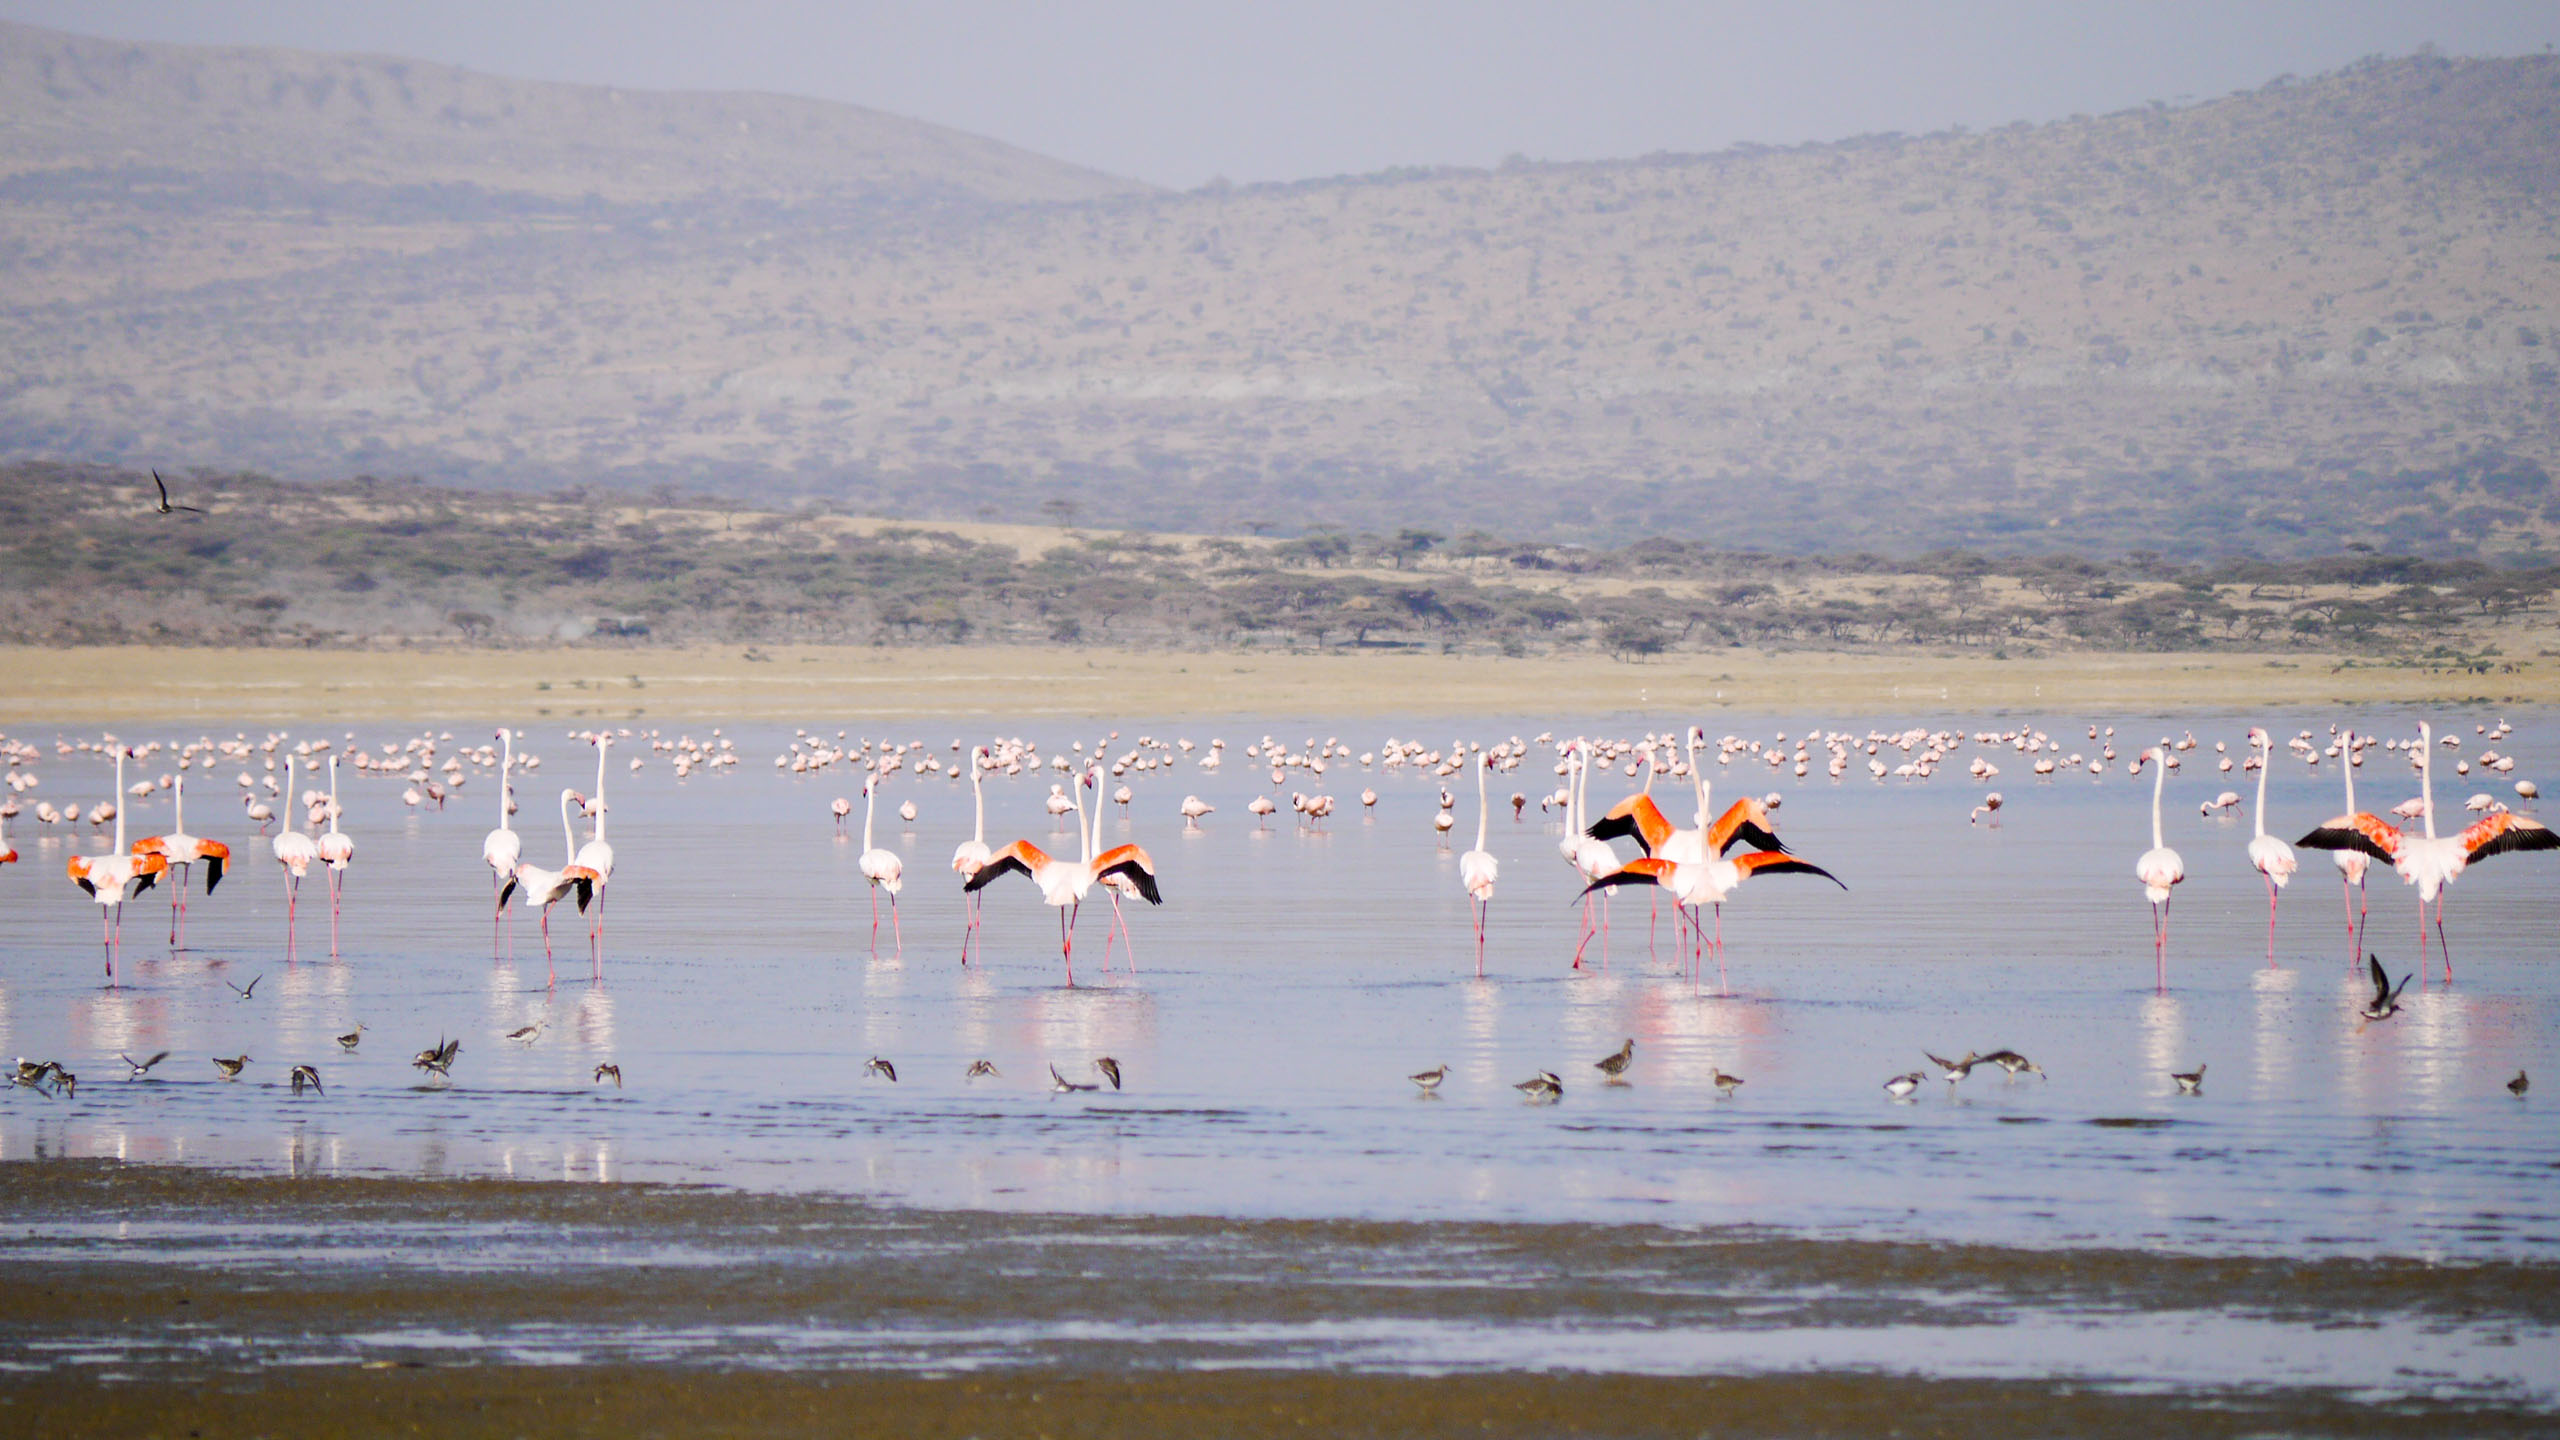 Group of flamingos in Ethiopia wetlands